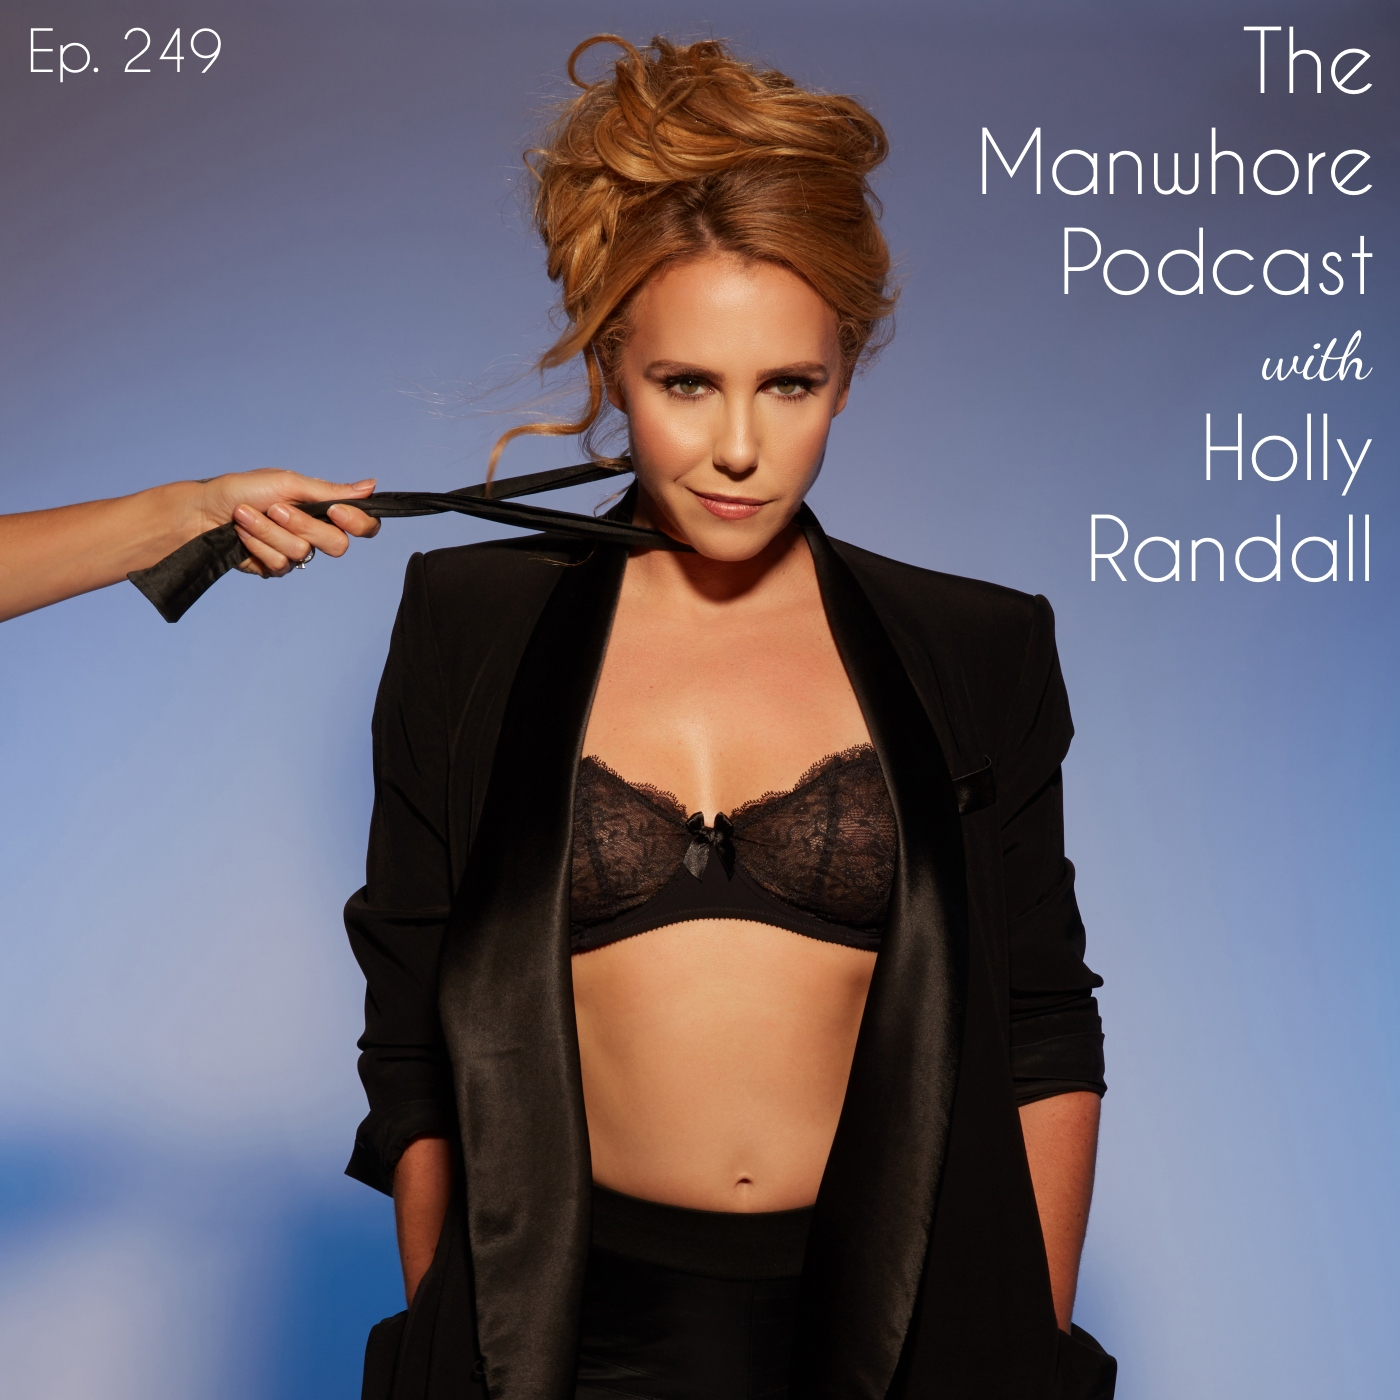 The Manwhore Podcast: A Sex-Positive Quest - Ep. 249: August Ames, Hot Girls Wanted, and Directing Porn with Holly Randall